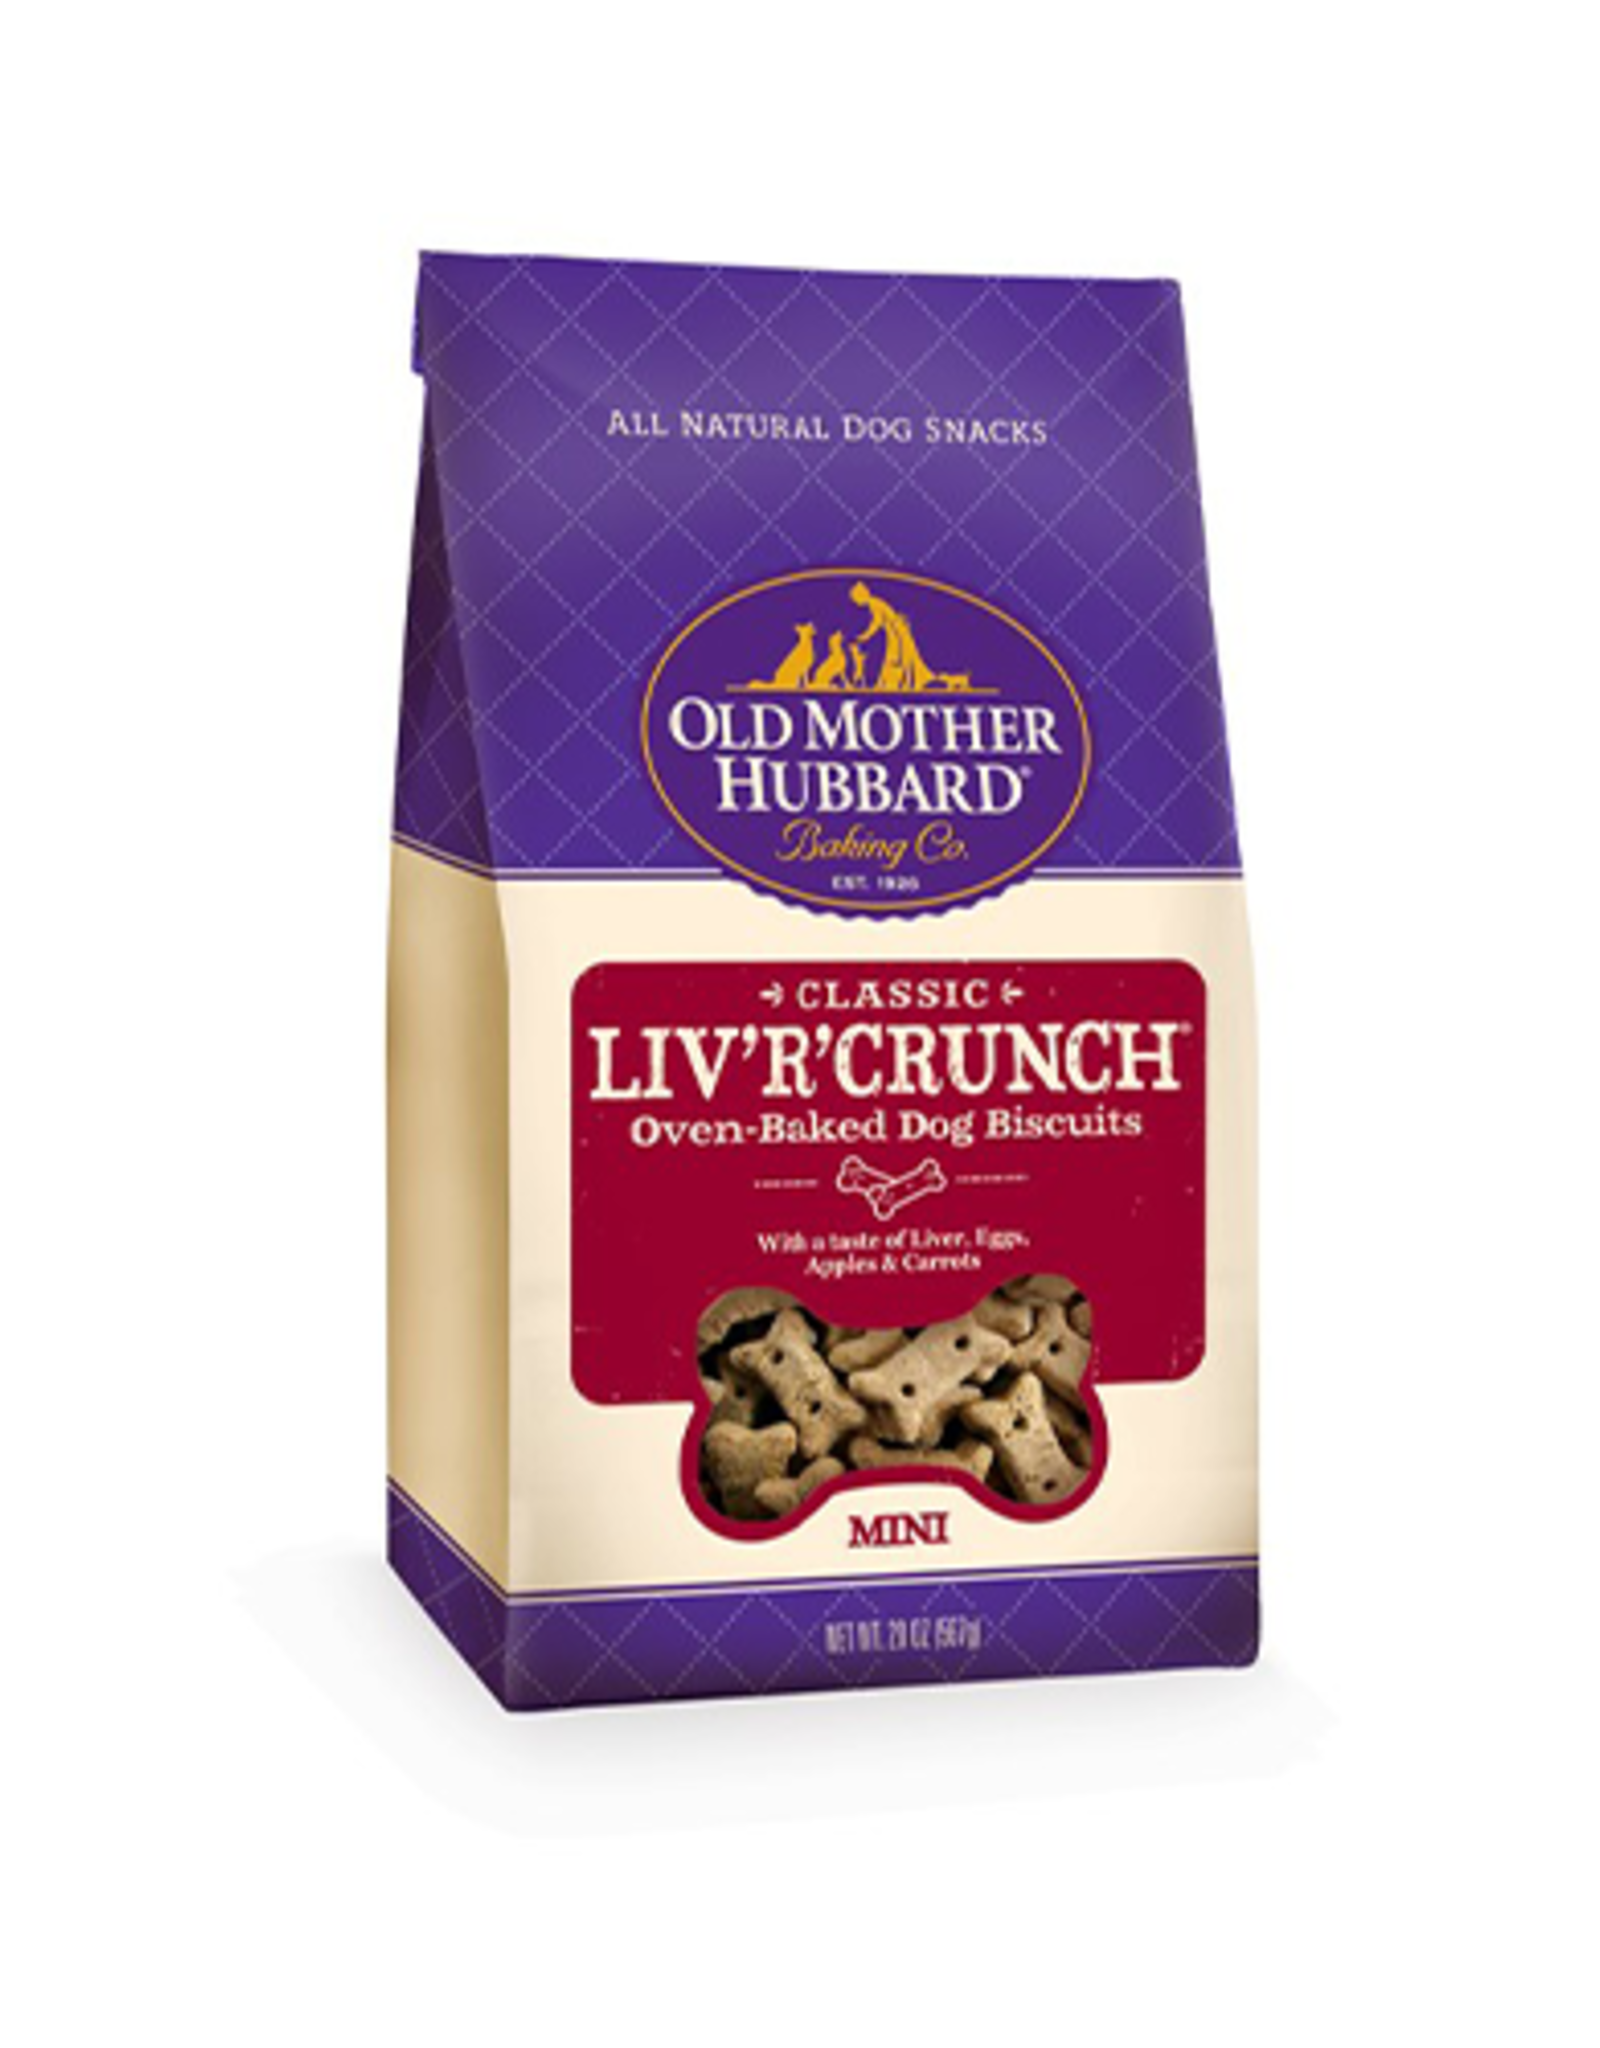 Old Mother Hubbard Old Mother Hubbard Mini LivRCrunch 20 oz